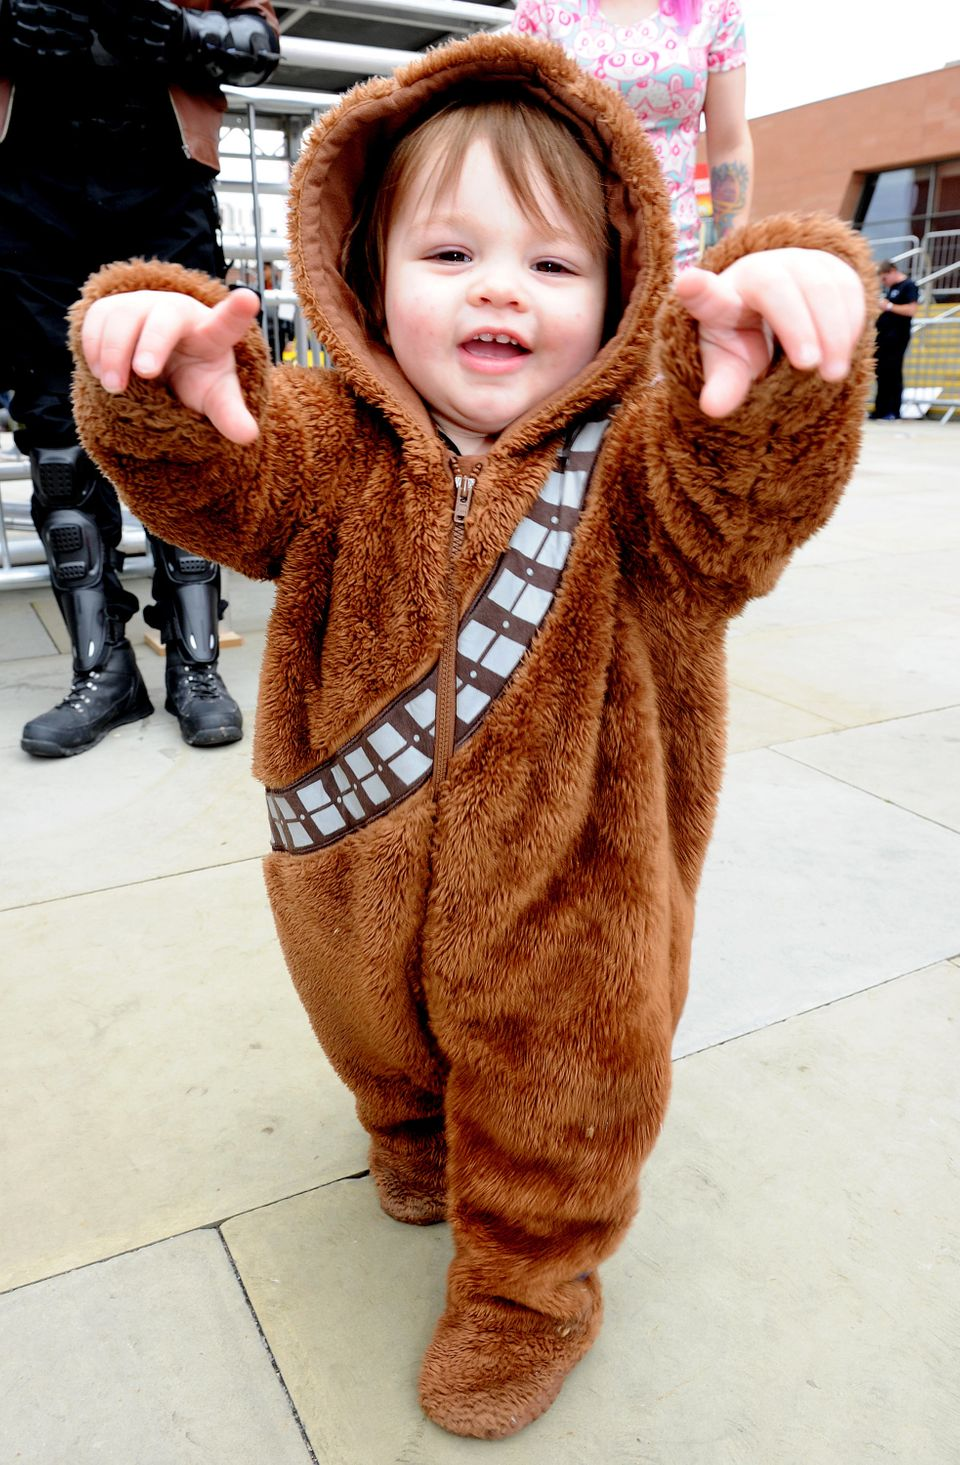 MANCHESTER, ENGLAND - JULY 30:  Young cosplayer dressed as Chewbacca of StarWars attends MCM Comic Con at Manchester Central